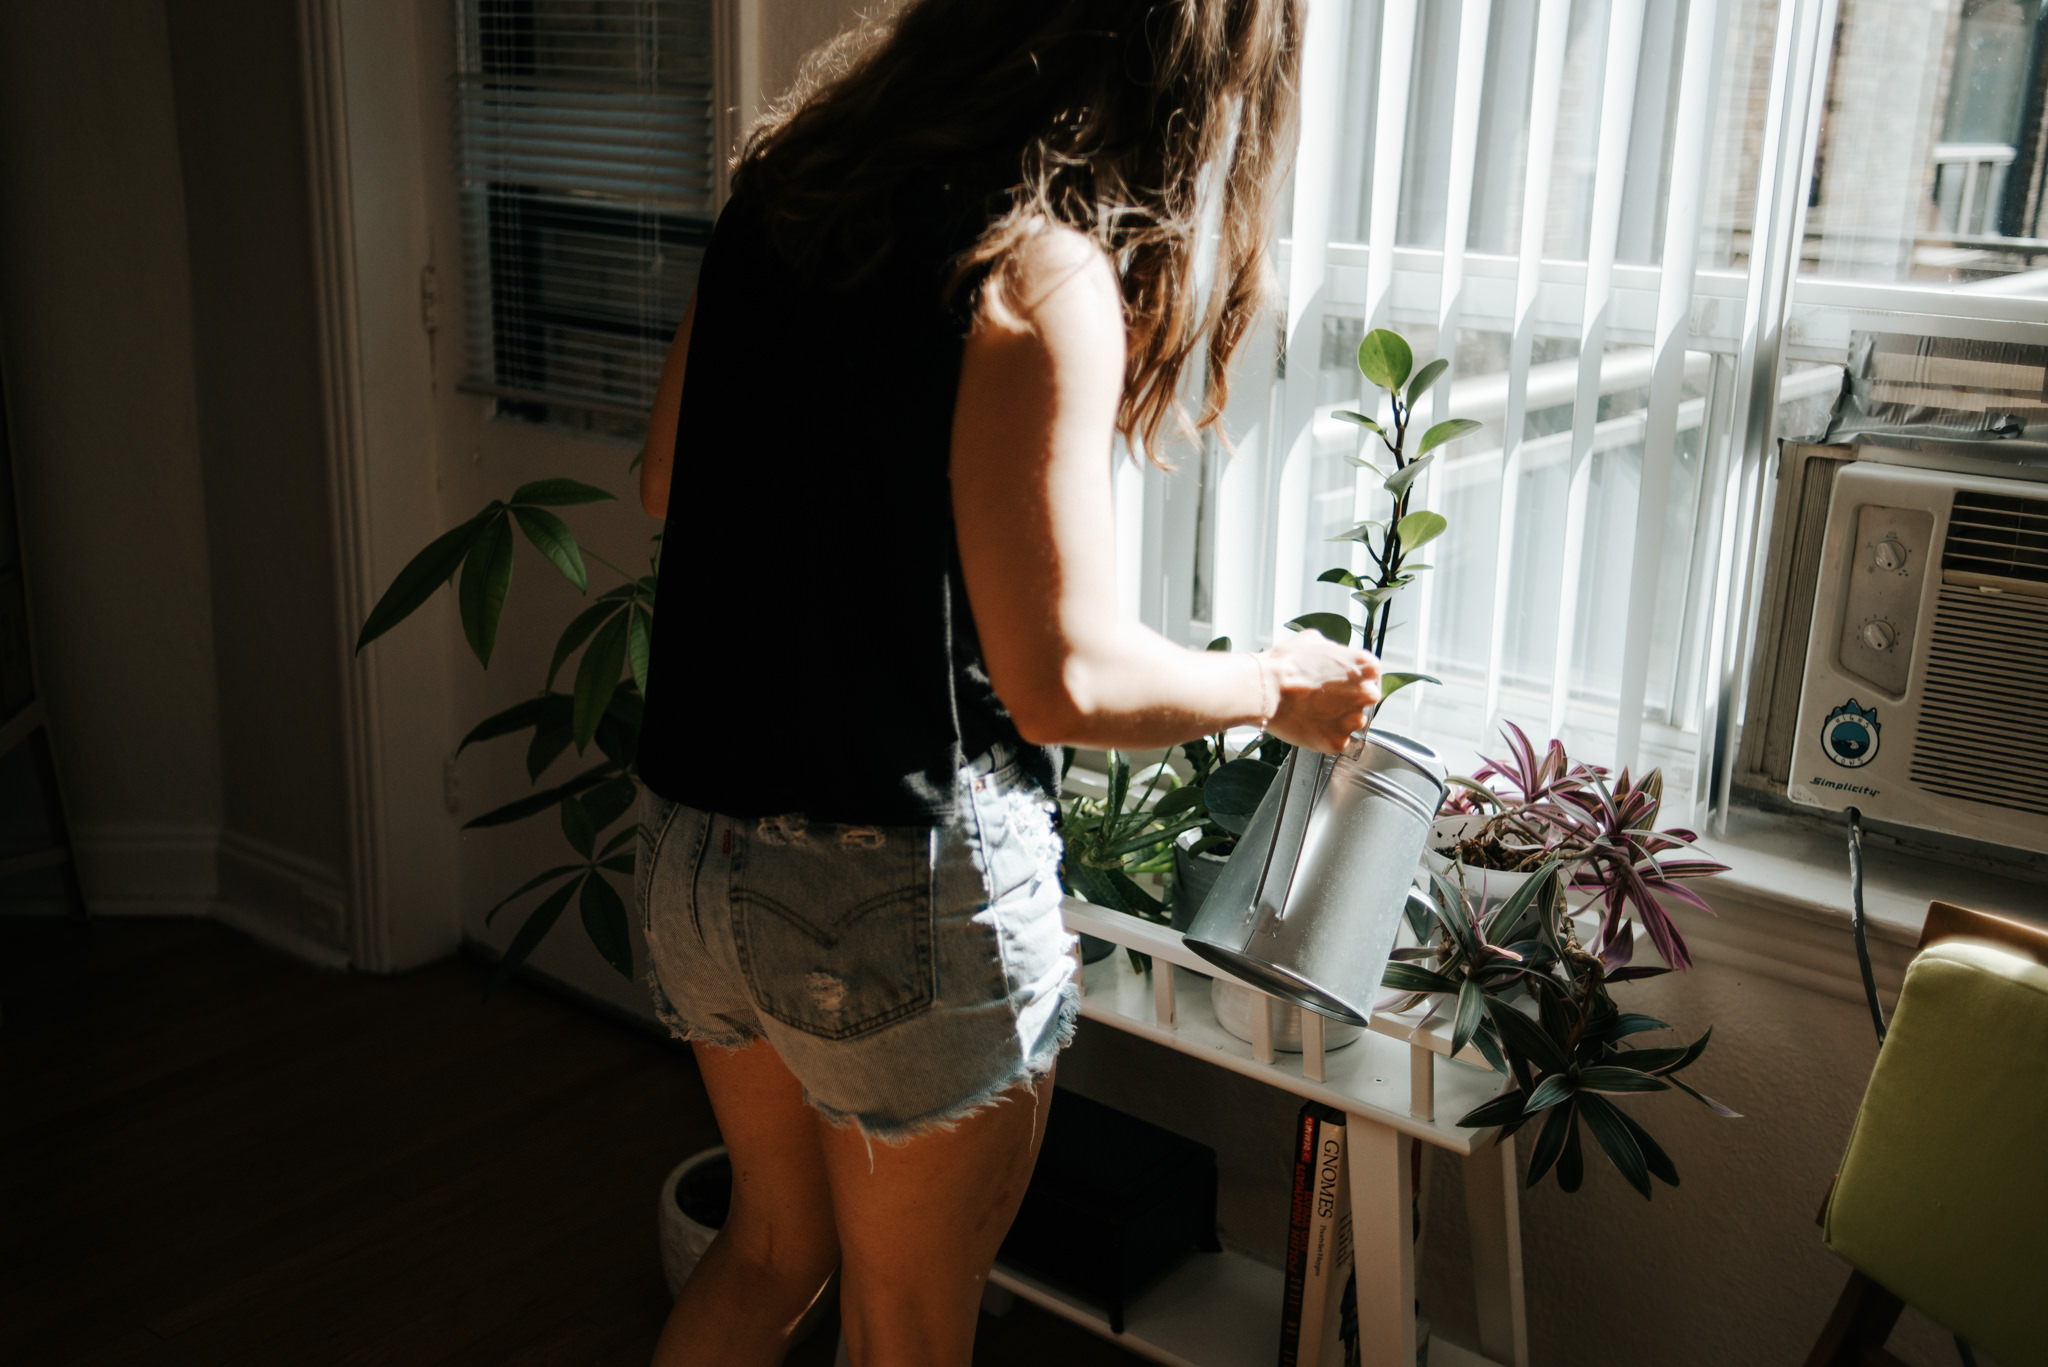 Girl watering plants by window inside apartment